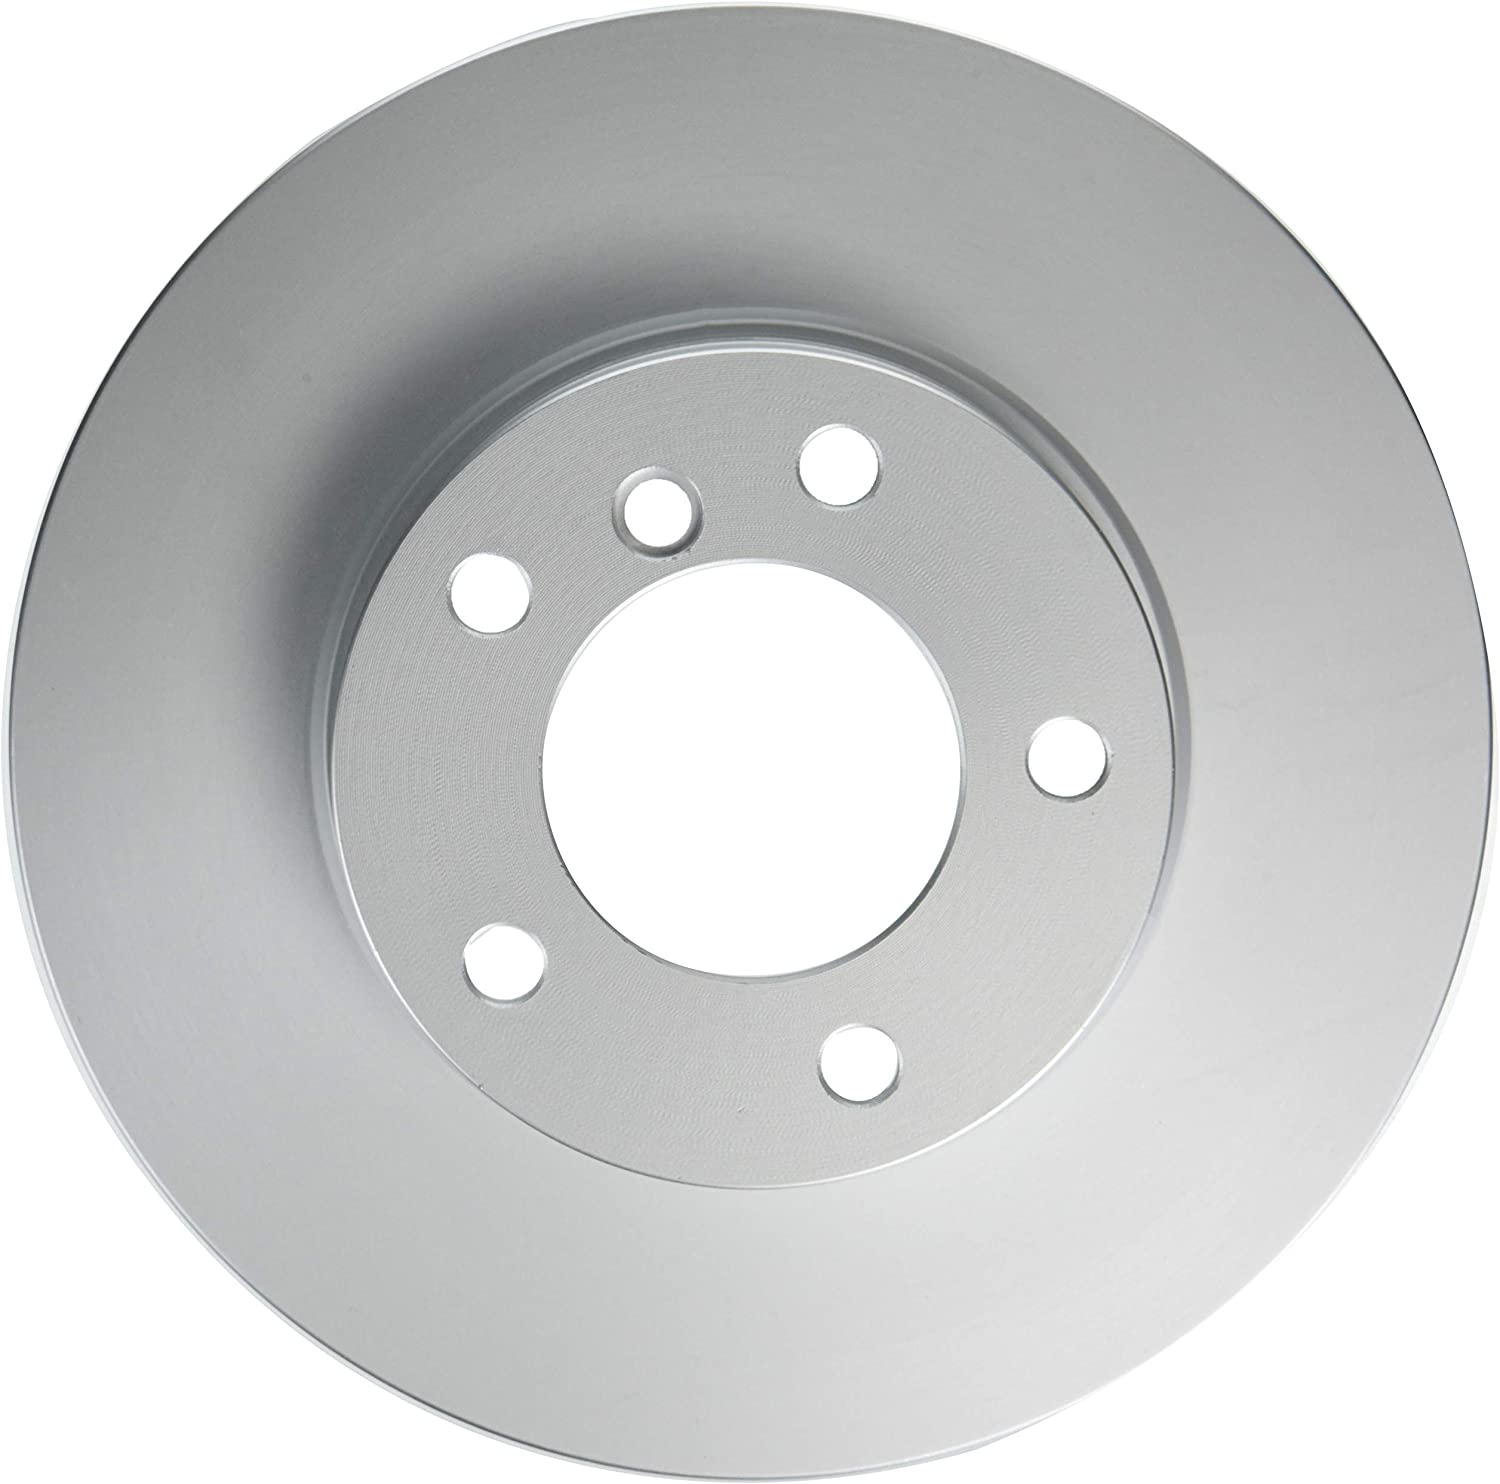 Raybestos Popular standard 96801FZN Rust Prevention Technology Coated Rotor All items free shipping Brake